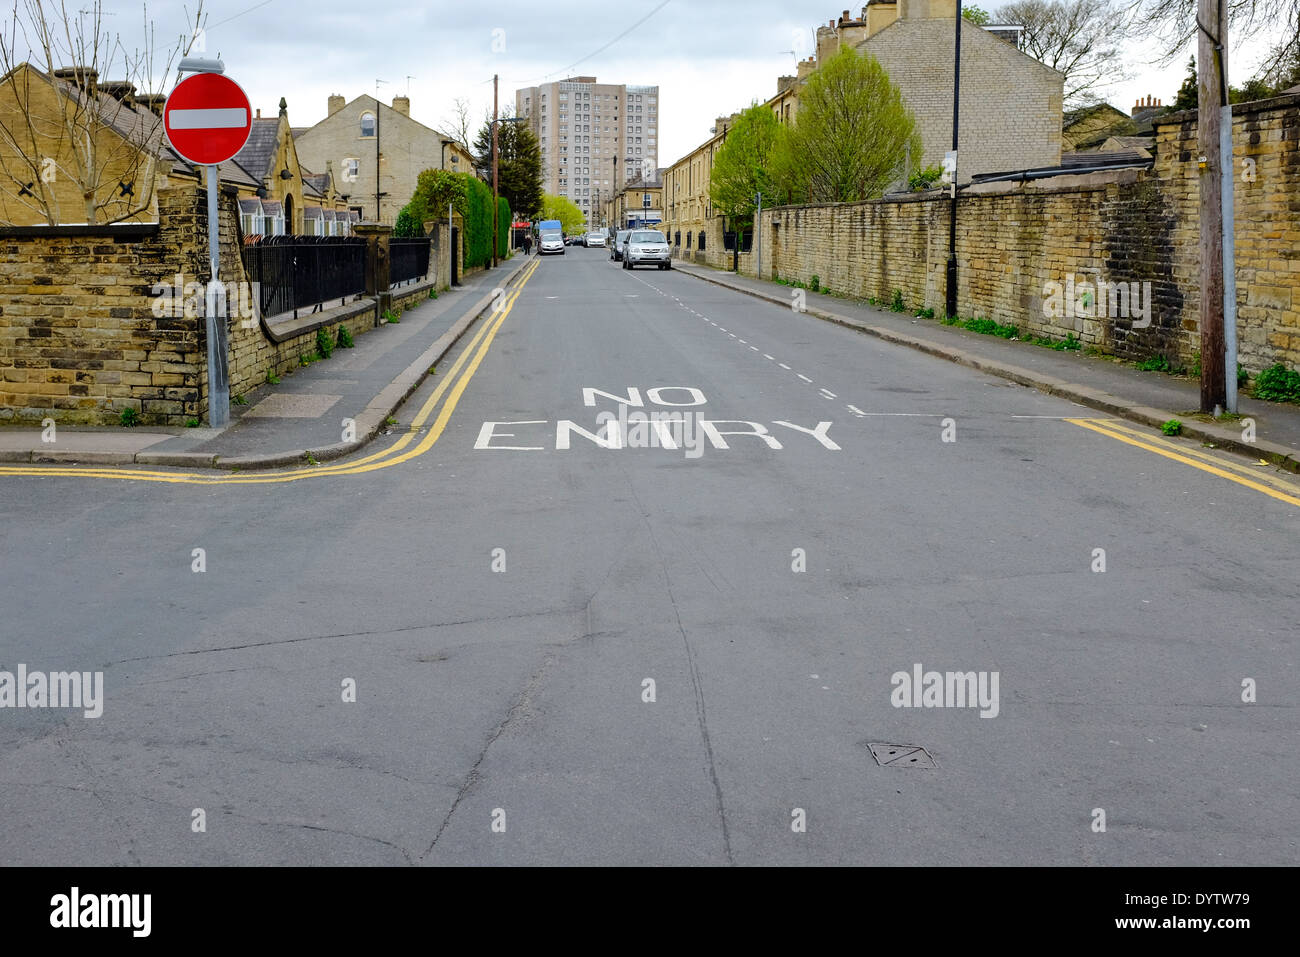 'No Entry' - a sign and notice on a road in an urban side street. A pedestrian is in the far distance. - Stock Image